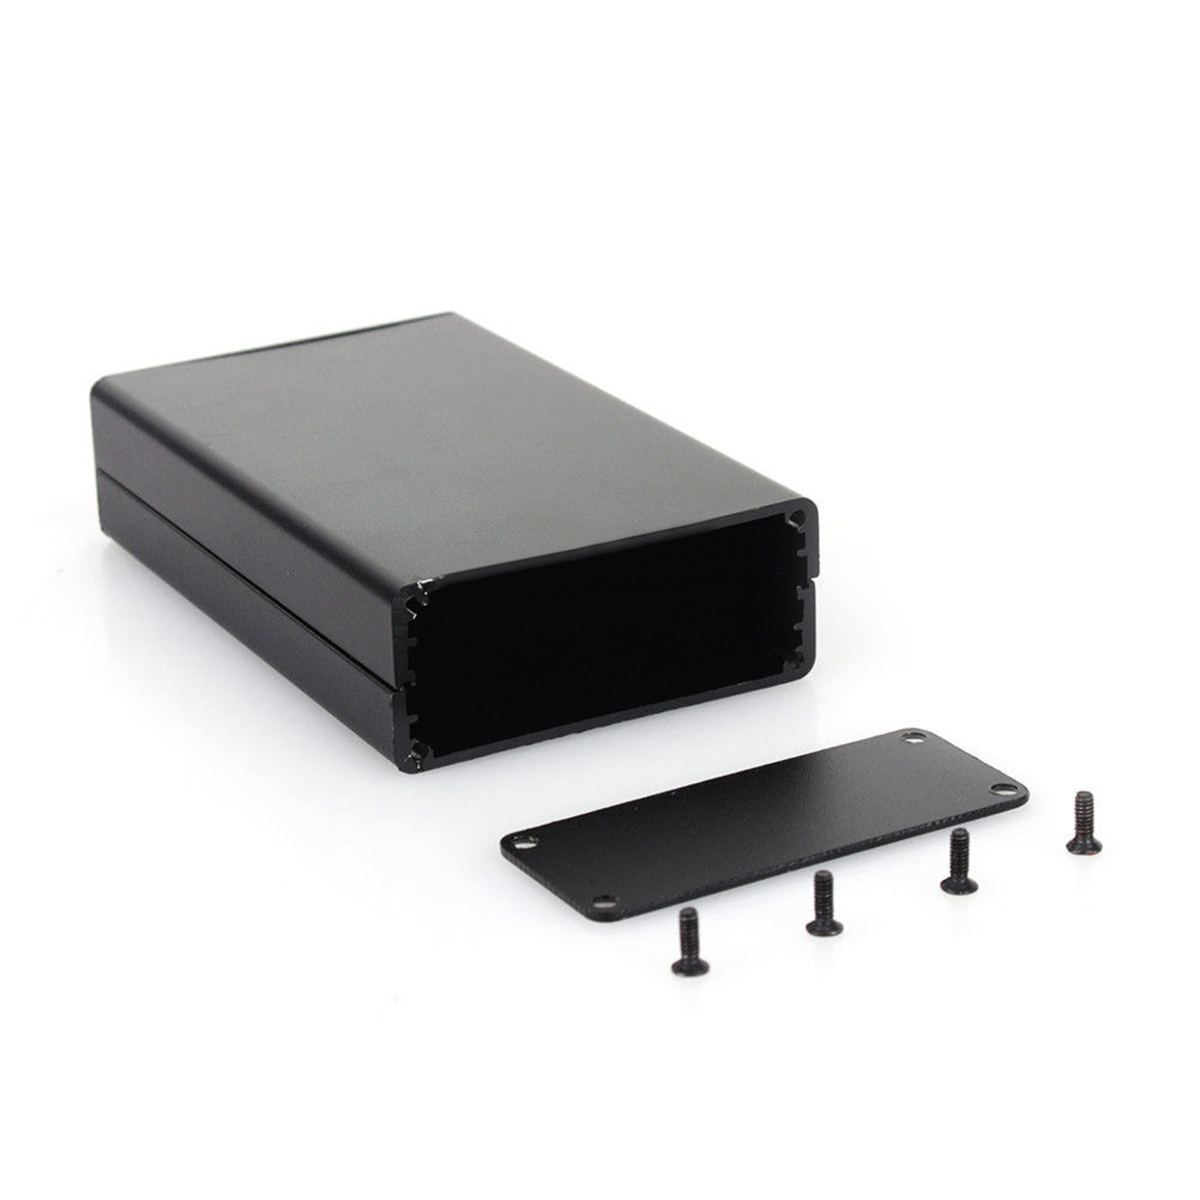 1pc Black Aluminum Enclosure Box PCB Instrument Electronic Project Case 80x50x20mm(China)